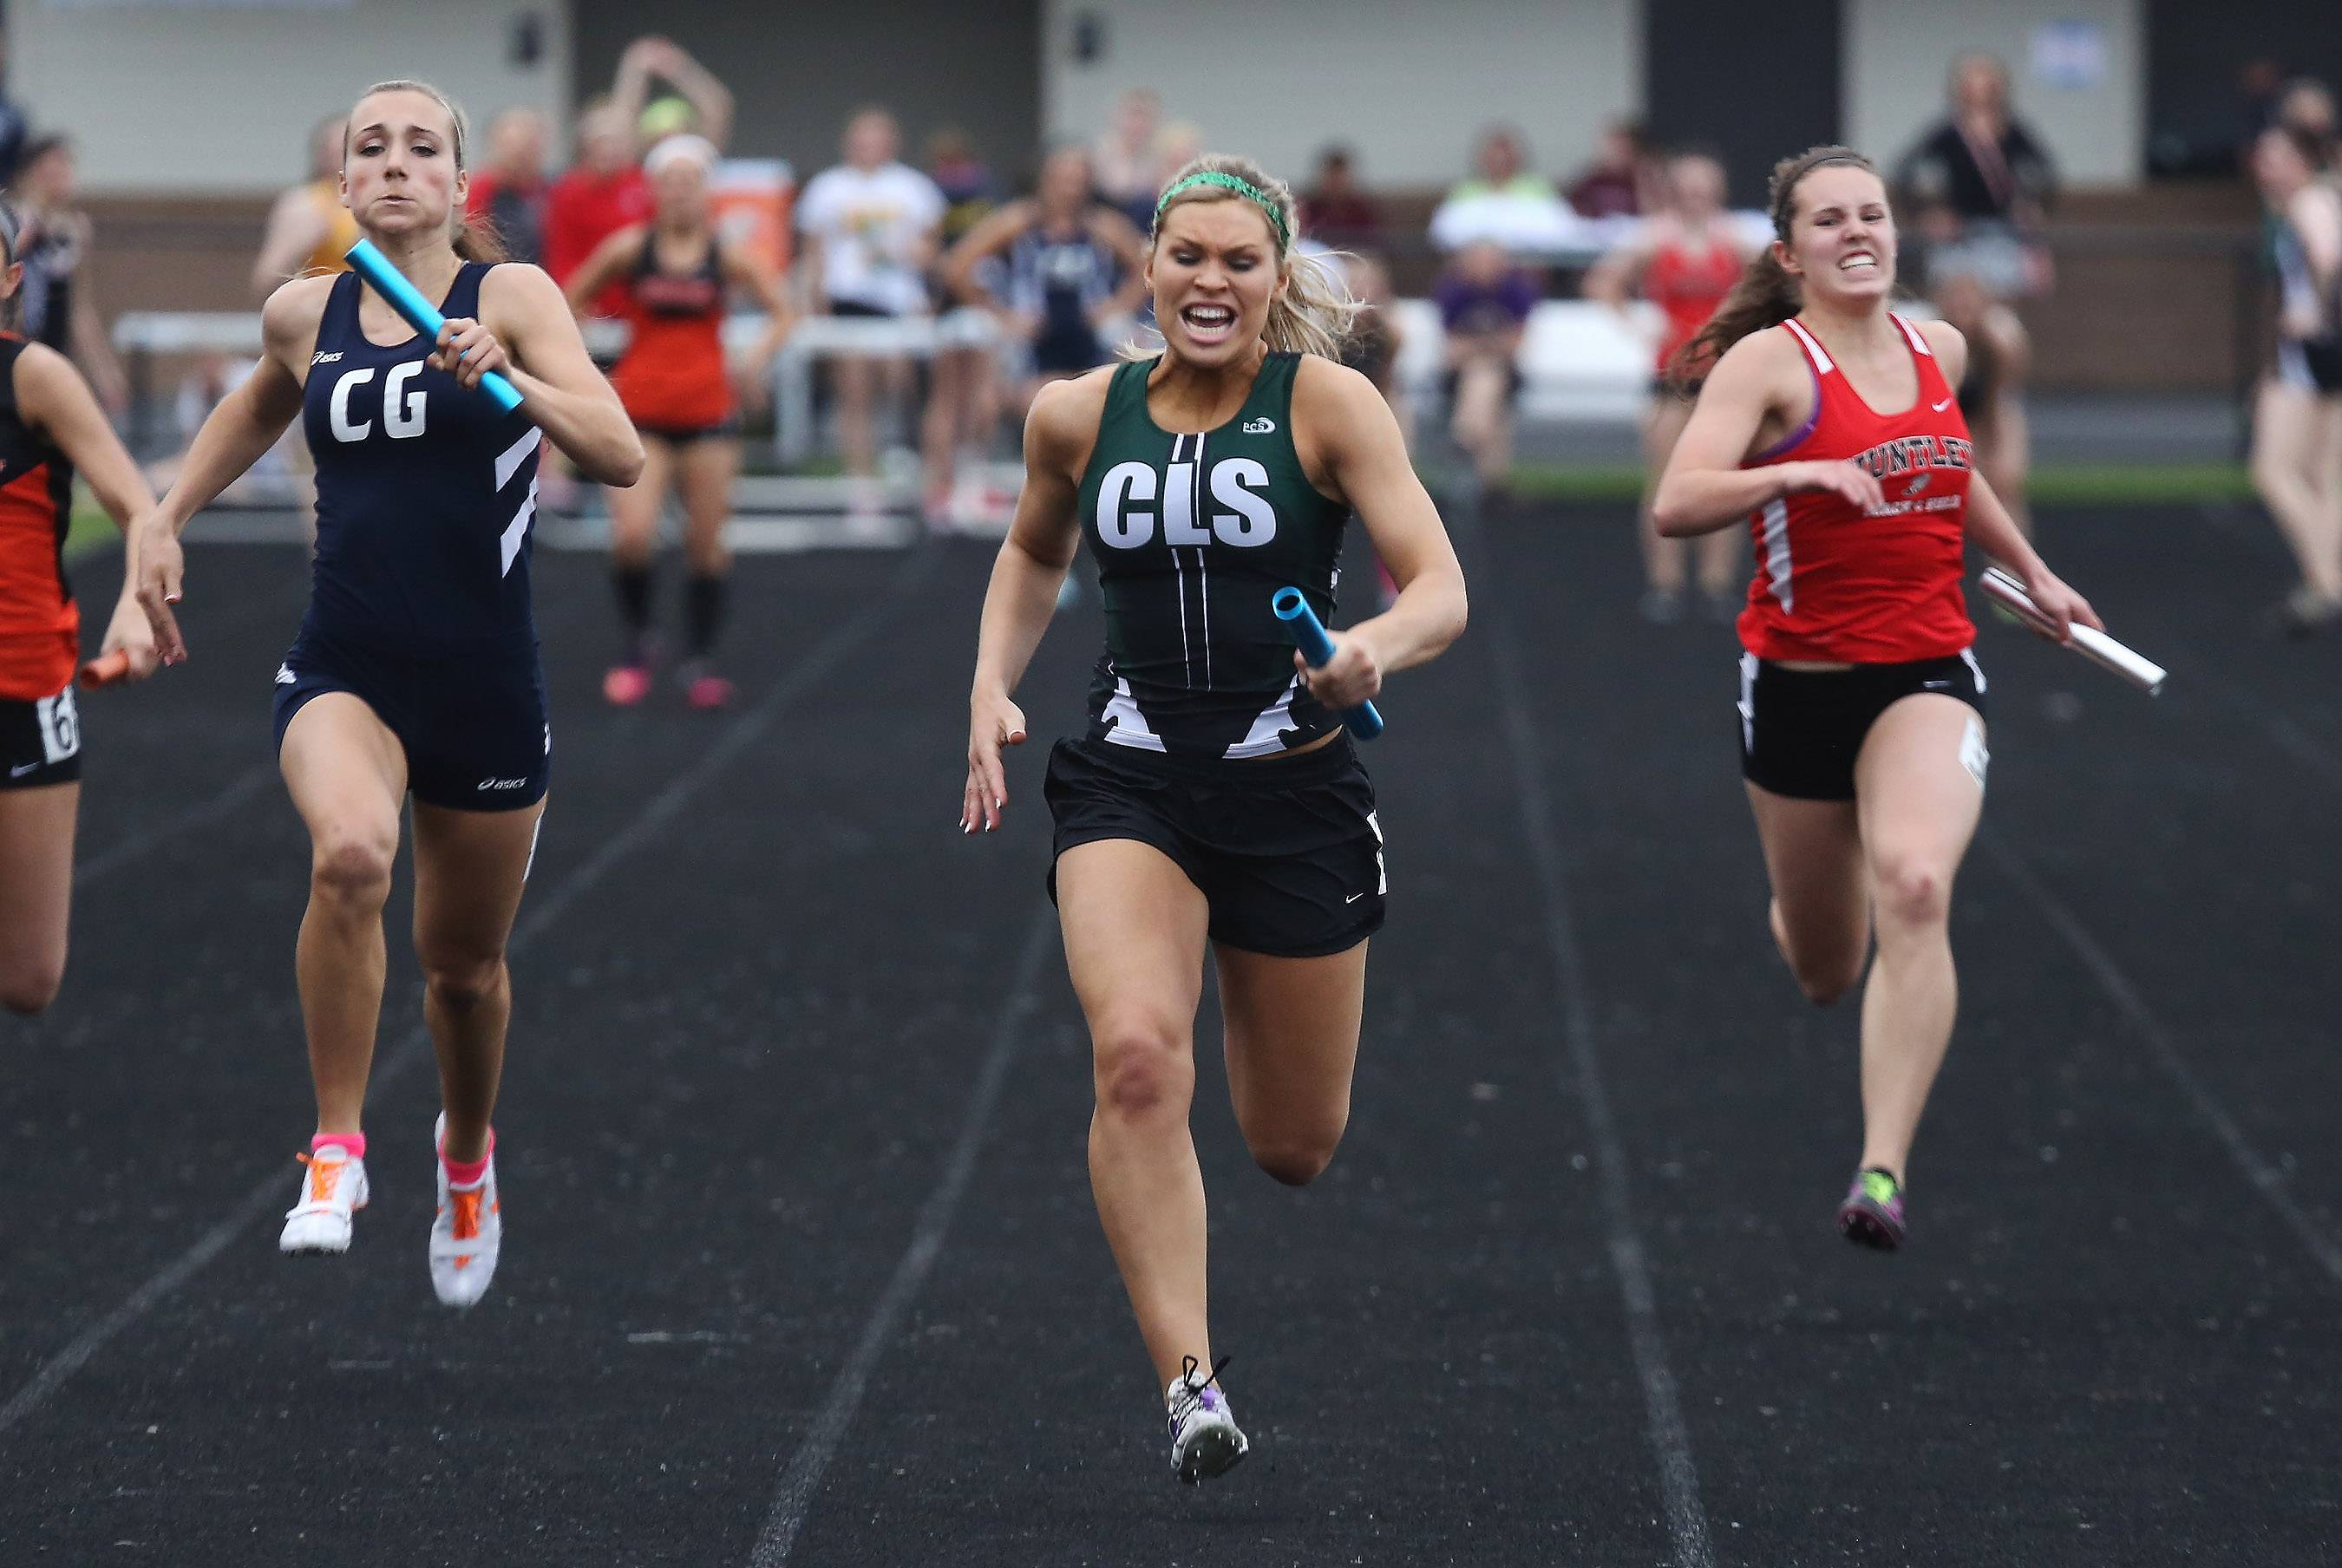 Taylor Schau of the Crystal Lake South team wins the 4x100 meter realy during the Fox Valley Conference meet Thursday at Grayslake North. Eva Burke of Cary-Grove is left and Tina Driscoll of Huntley is right.